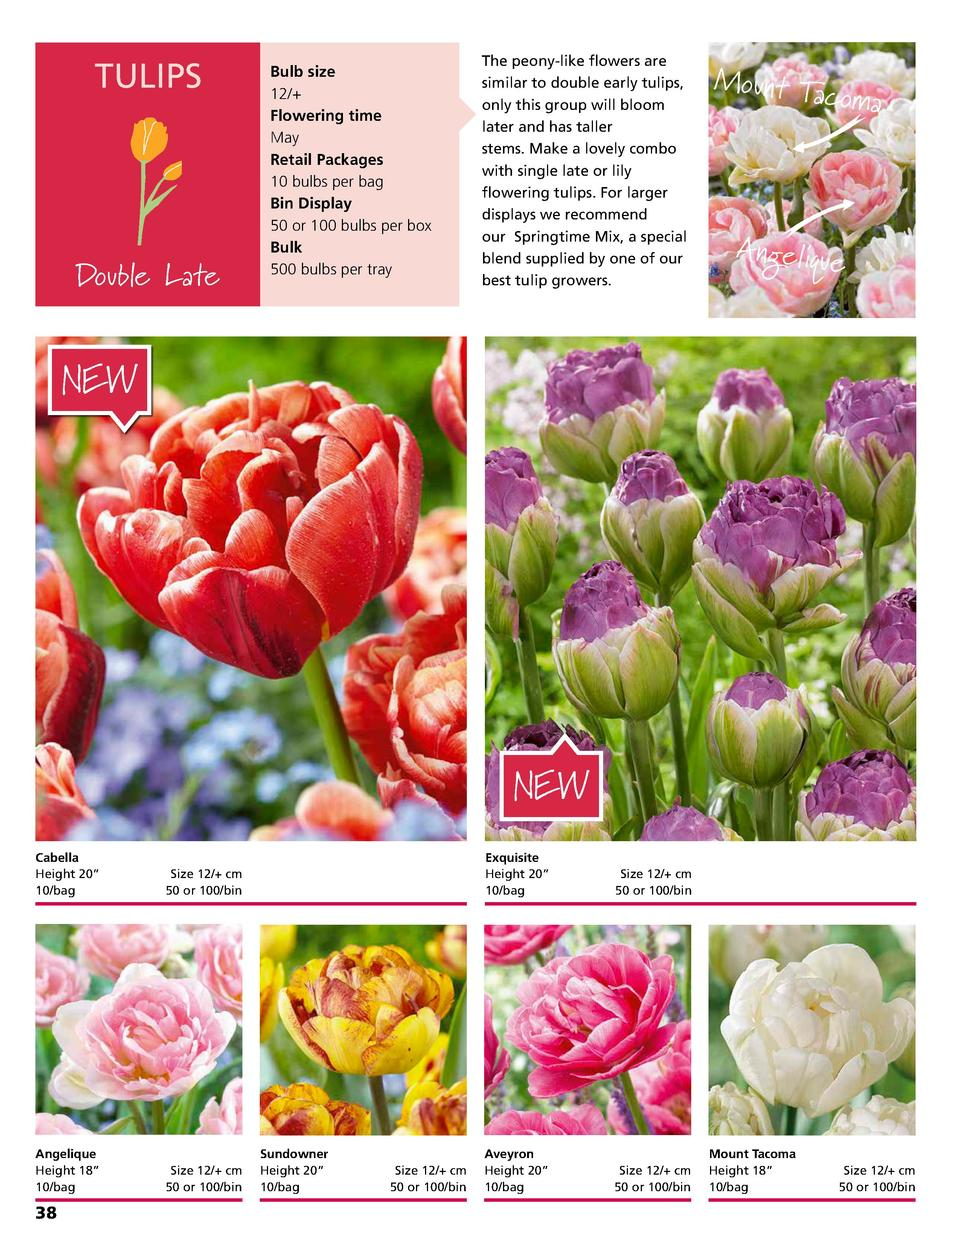 TULIPS  Double Late  Bulb size 12   Flowering time May Retail Packages 10 bulbs per bag Bin Display 50 or 100 bulbs per bo...